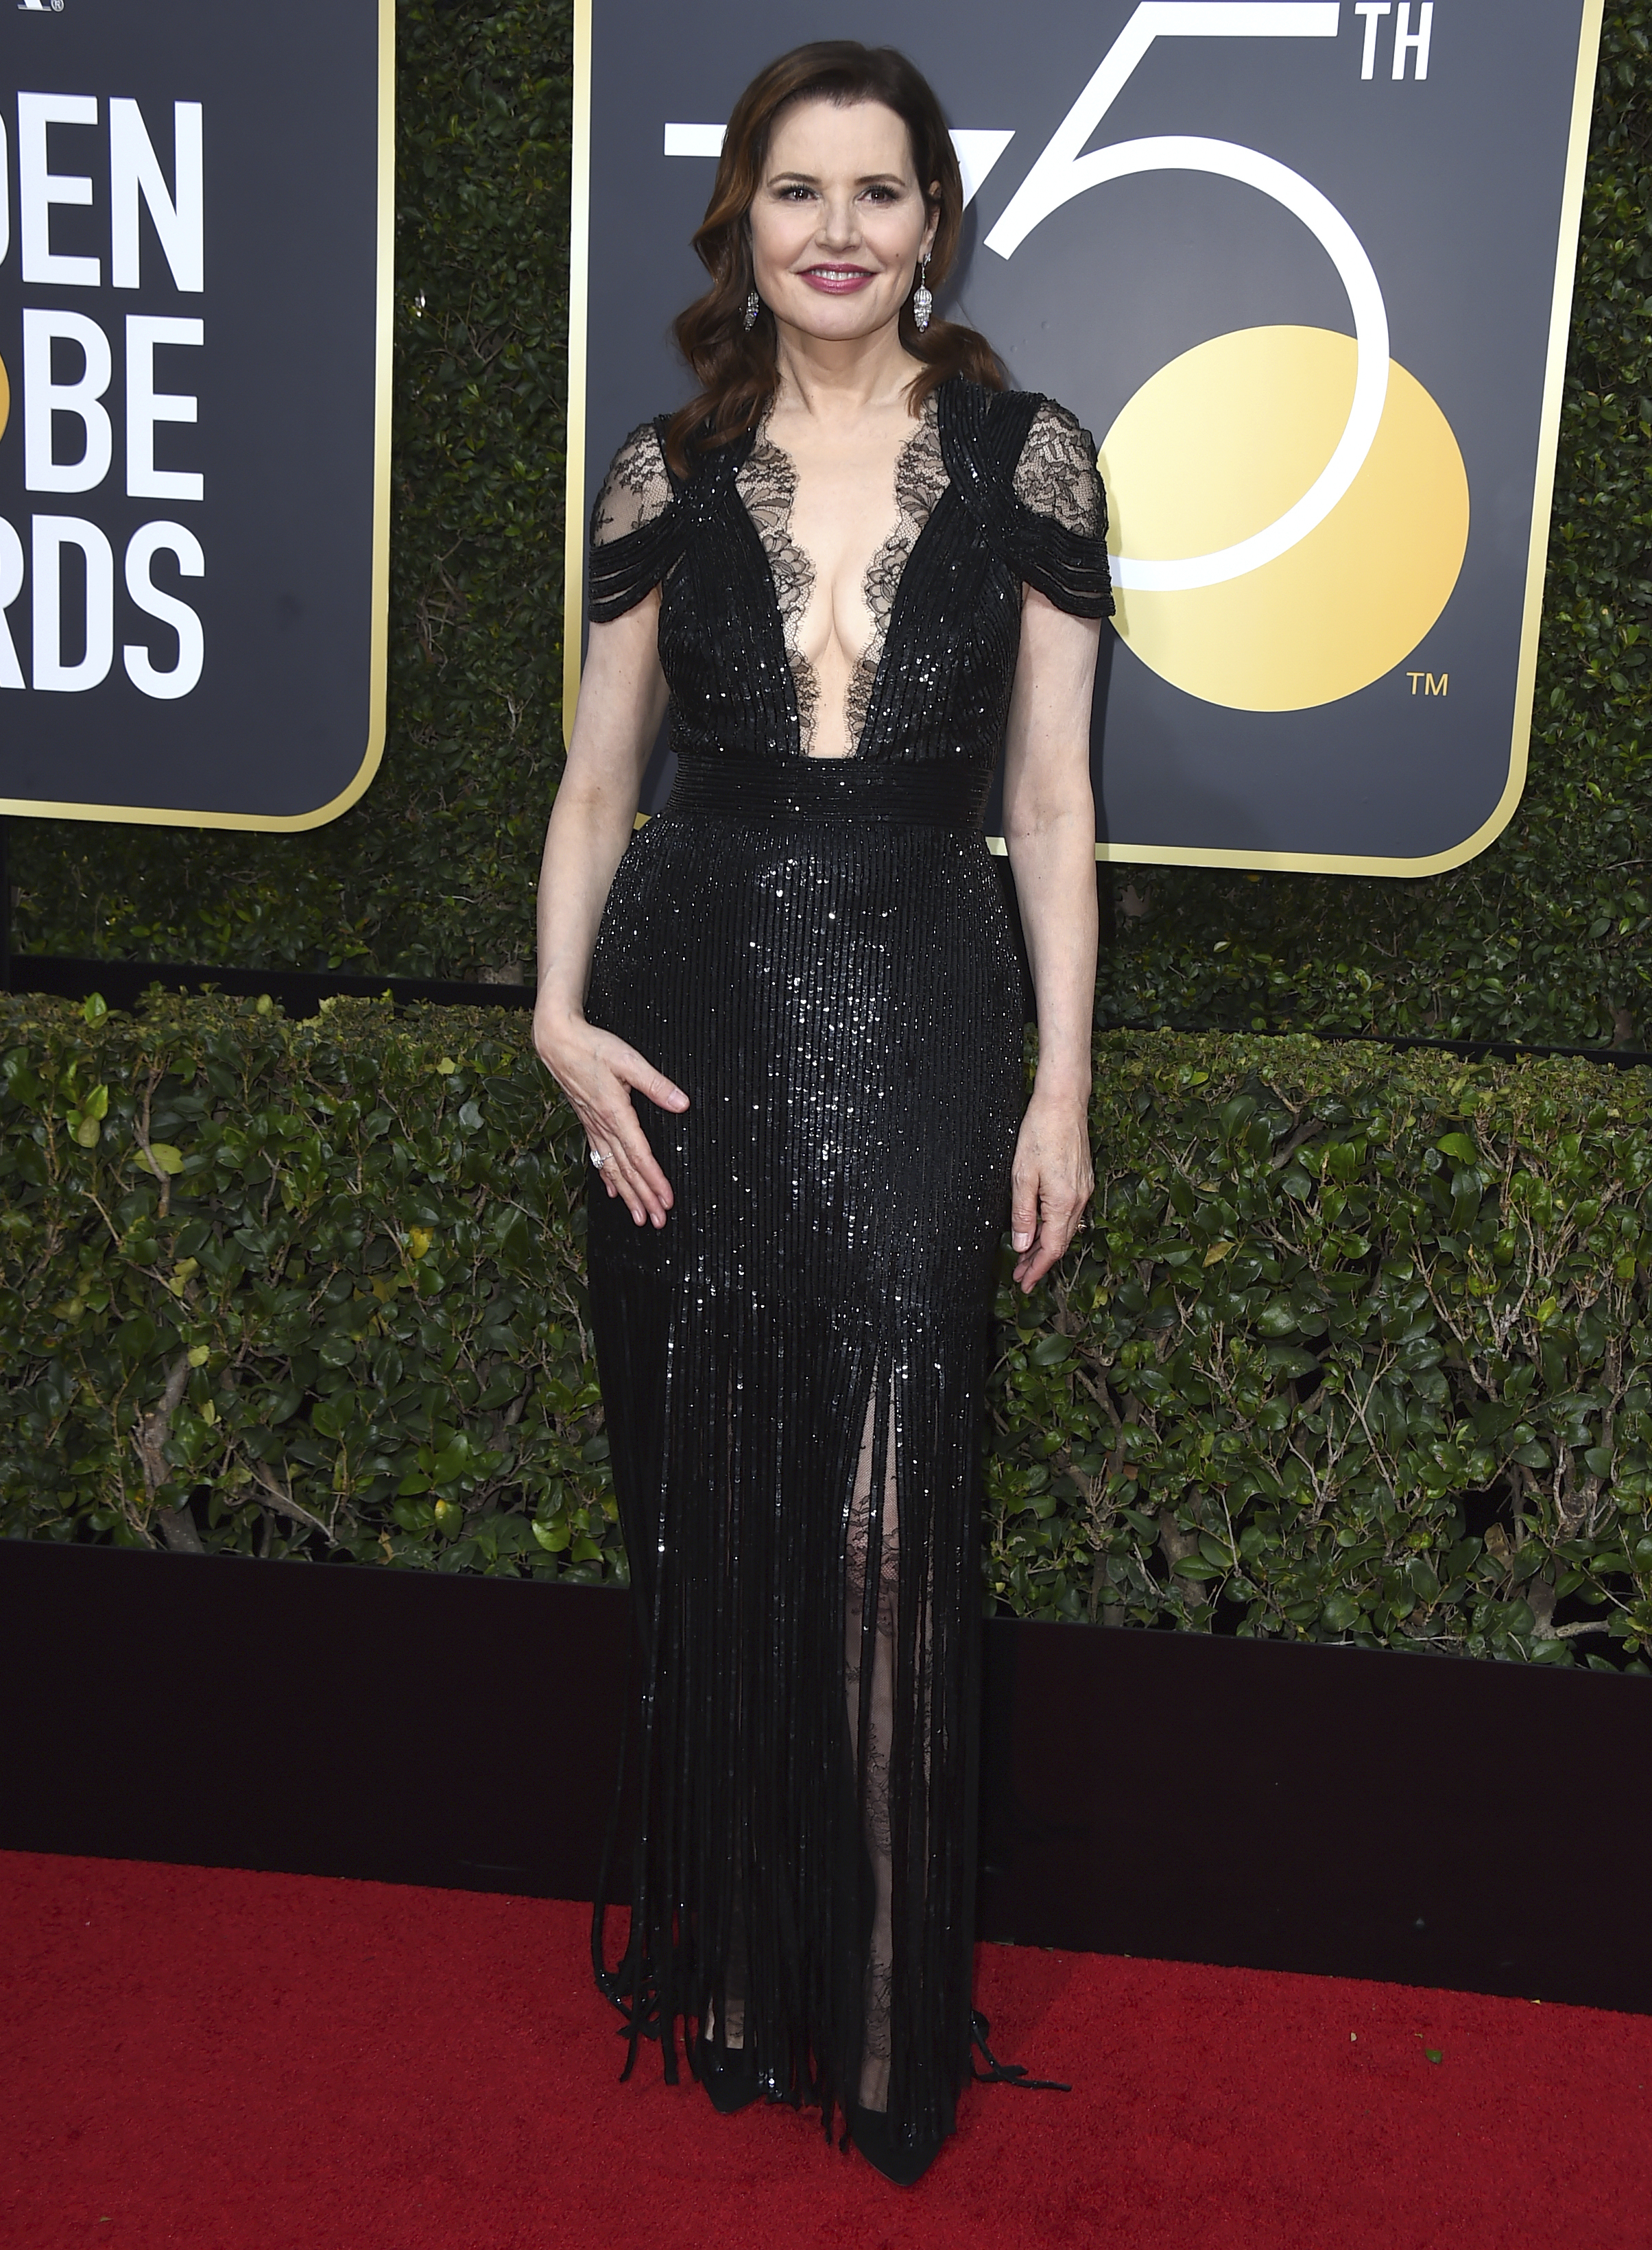 <div class='meta'><div class='origin-logo' data-origin='AP'></div><span class='caption-text' data-credit='Jordan Strauss/Invision/AP'>Geena Davis arrives at the 75th annual Golden Globe Awards at the Beverly Hilton Hotel on Sunday, Jan. 7, 2018, in Beverly Hills, Calif.</span></div>